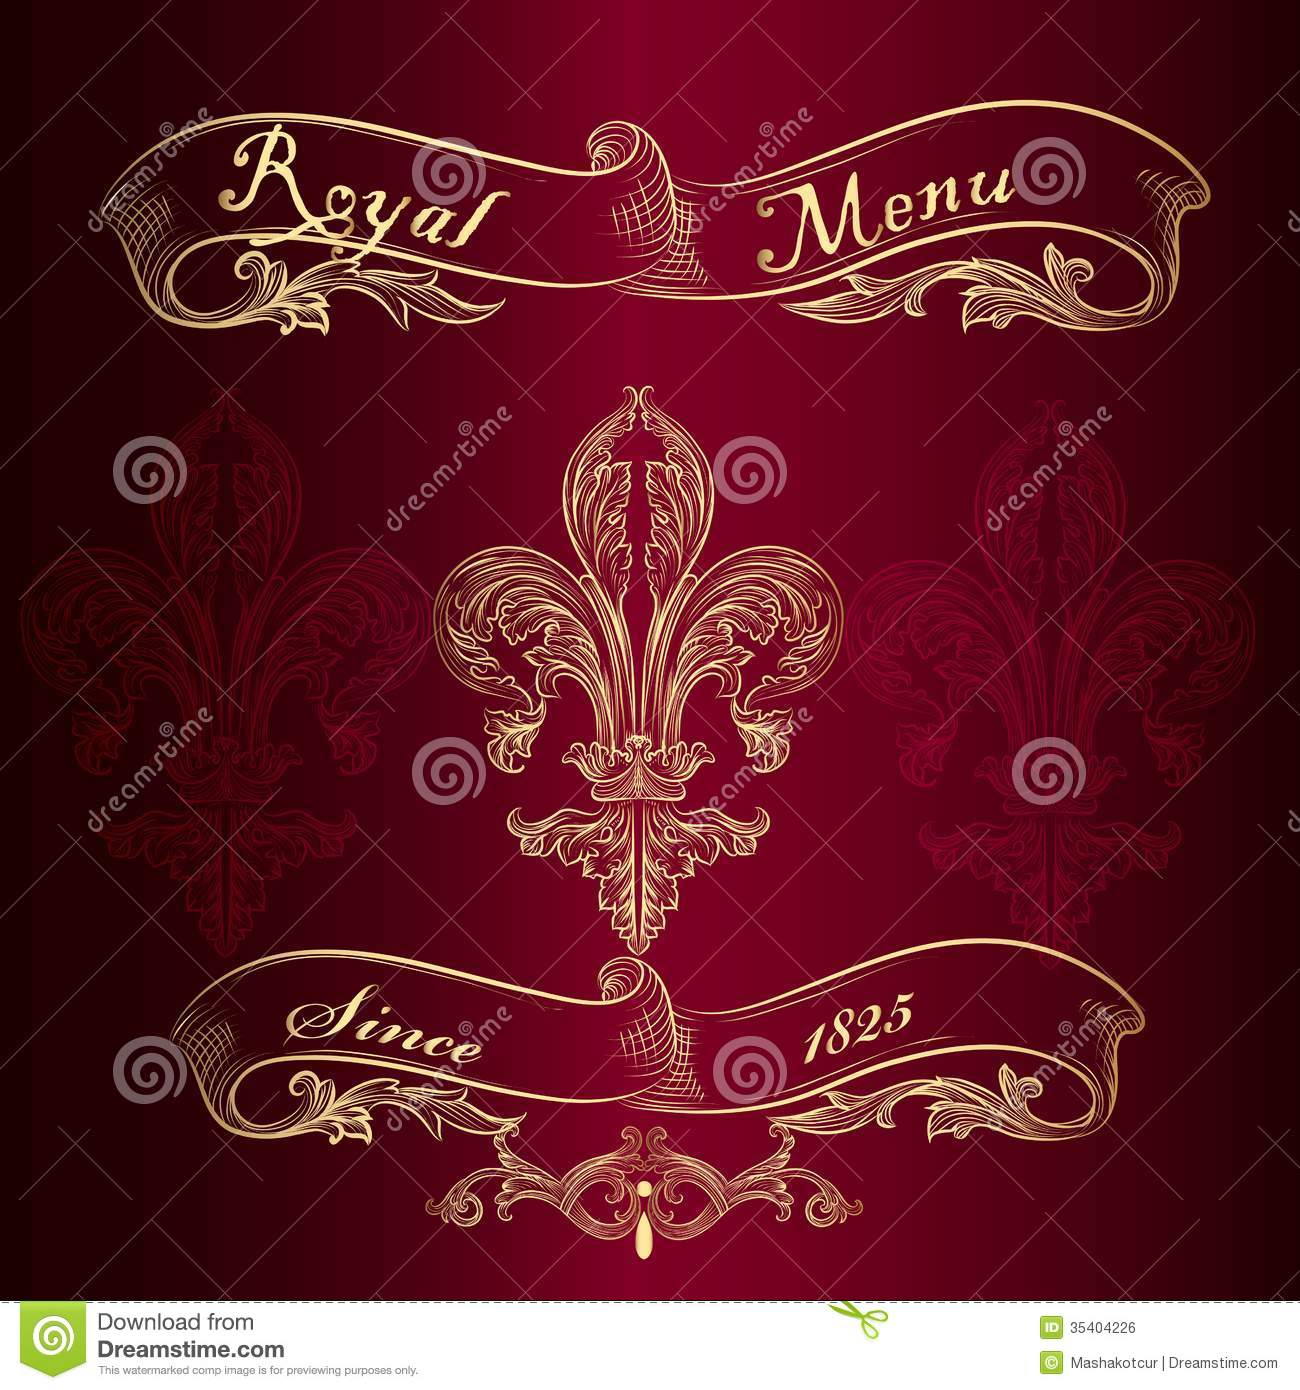 royal menu design with fleur de lis stock vector